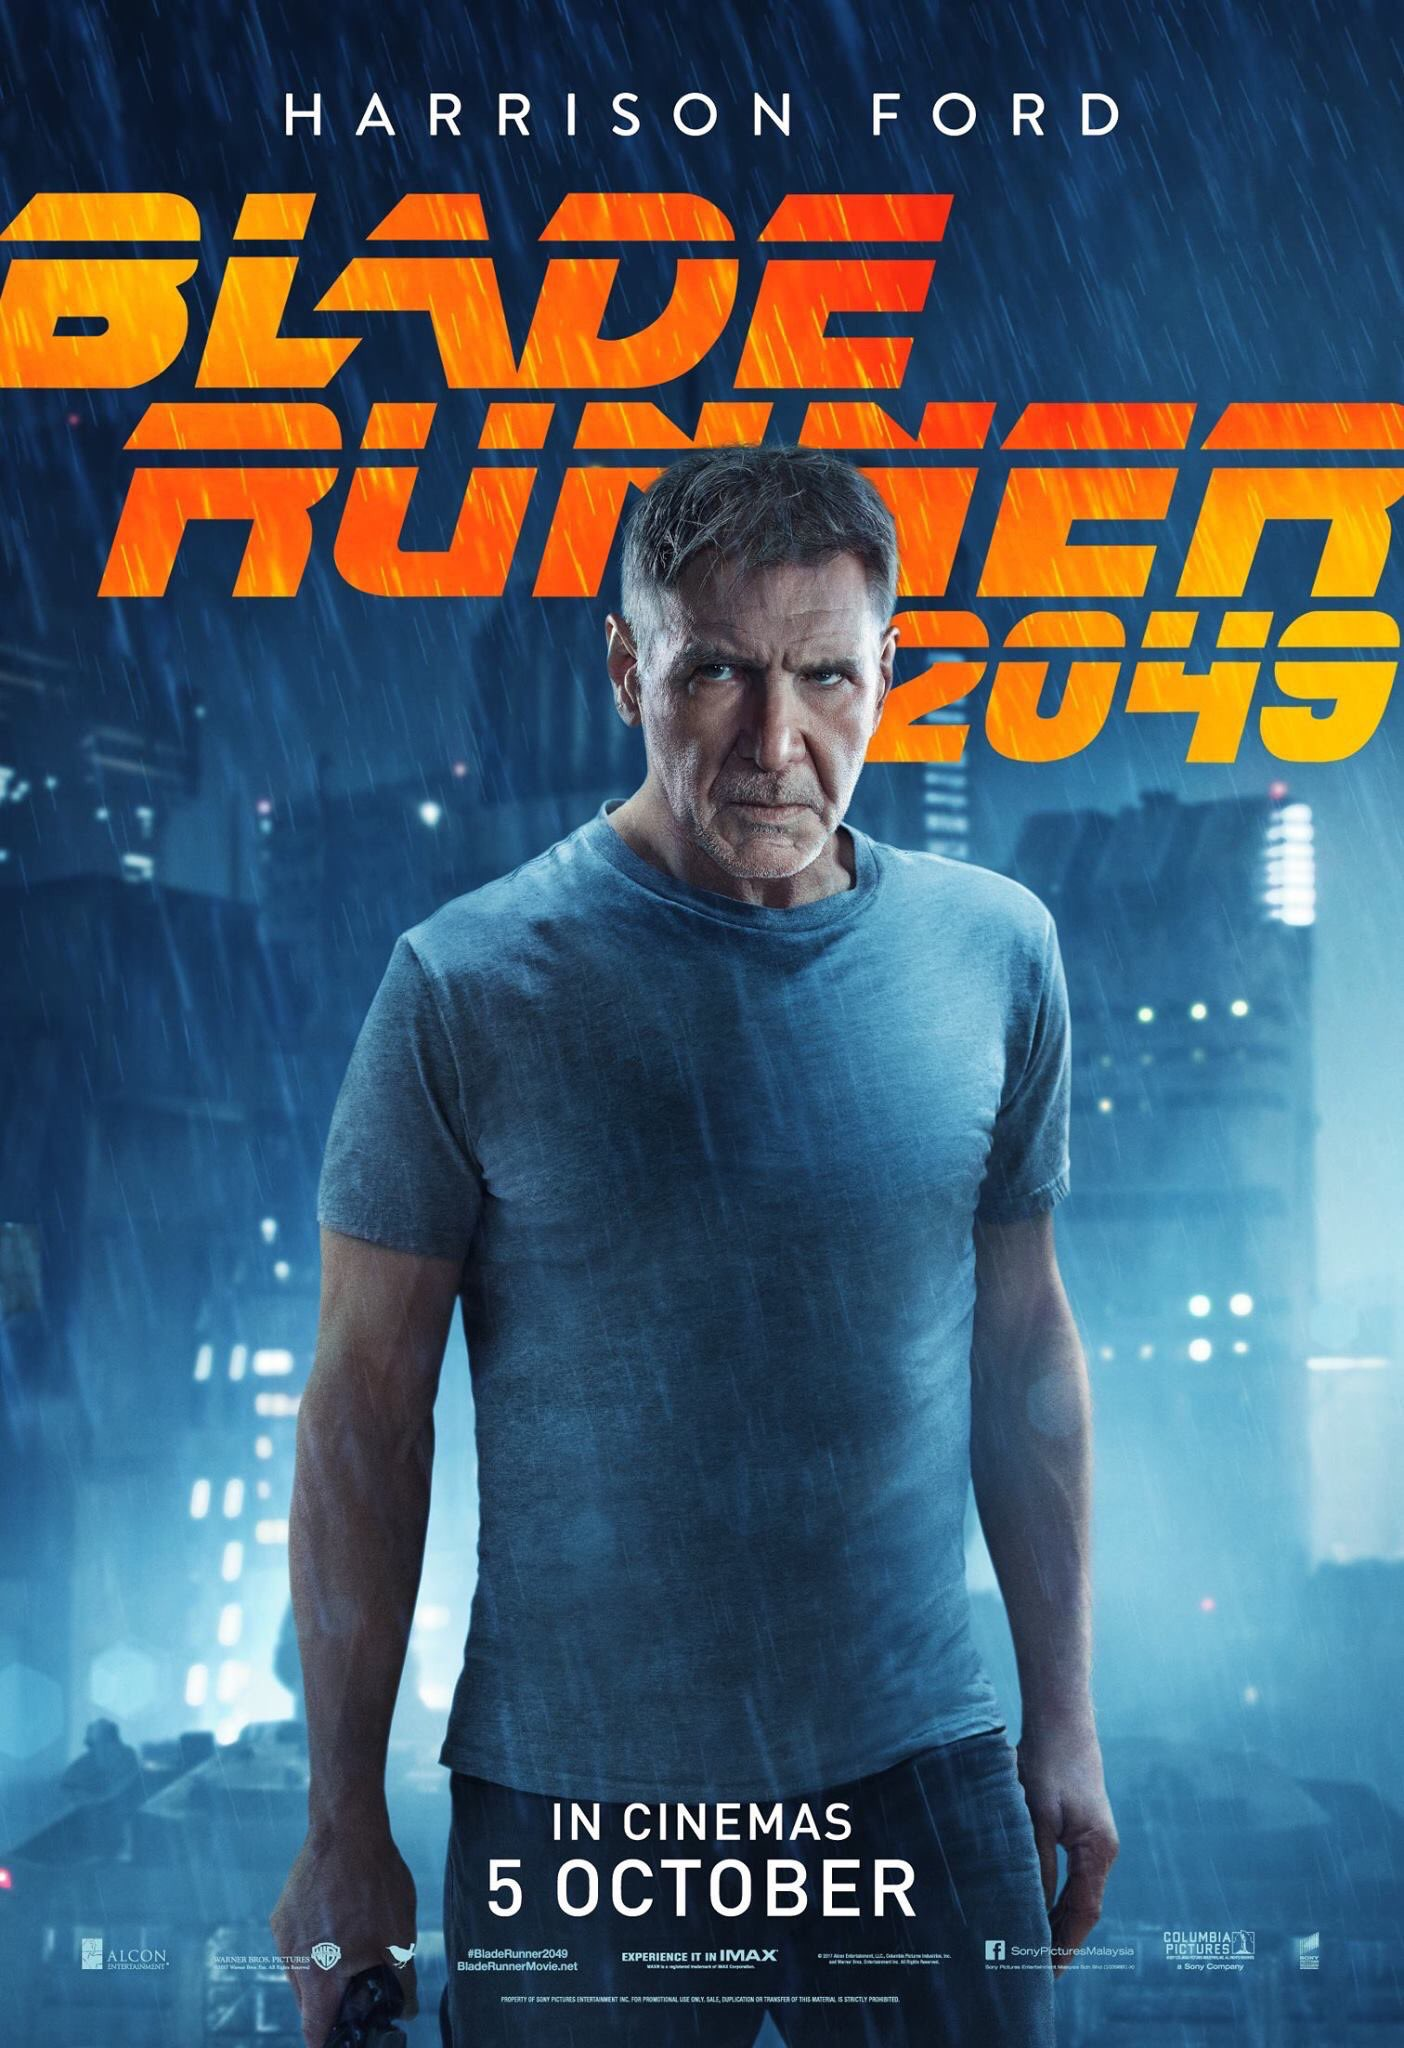 harrison in sci fi blade runner movie posters retro vintage kraft poster canvas wall sticker home decoration gift for kids